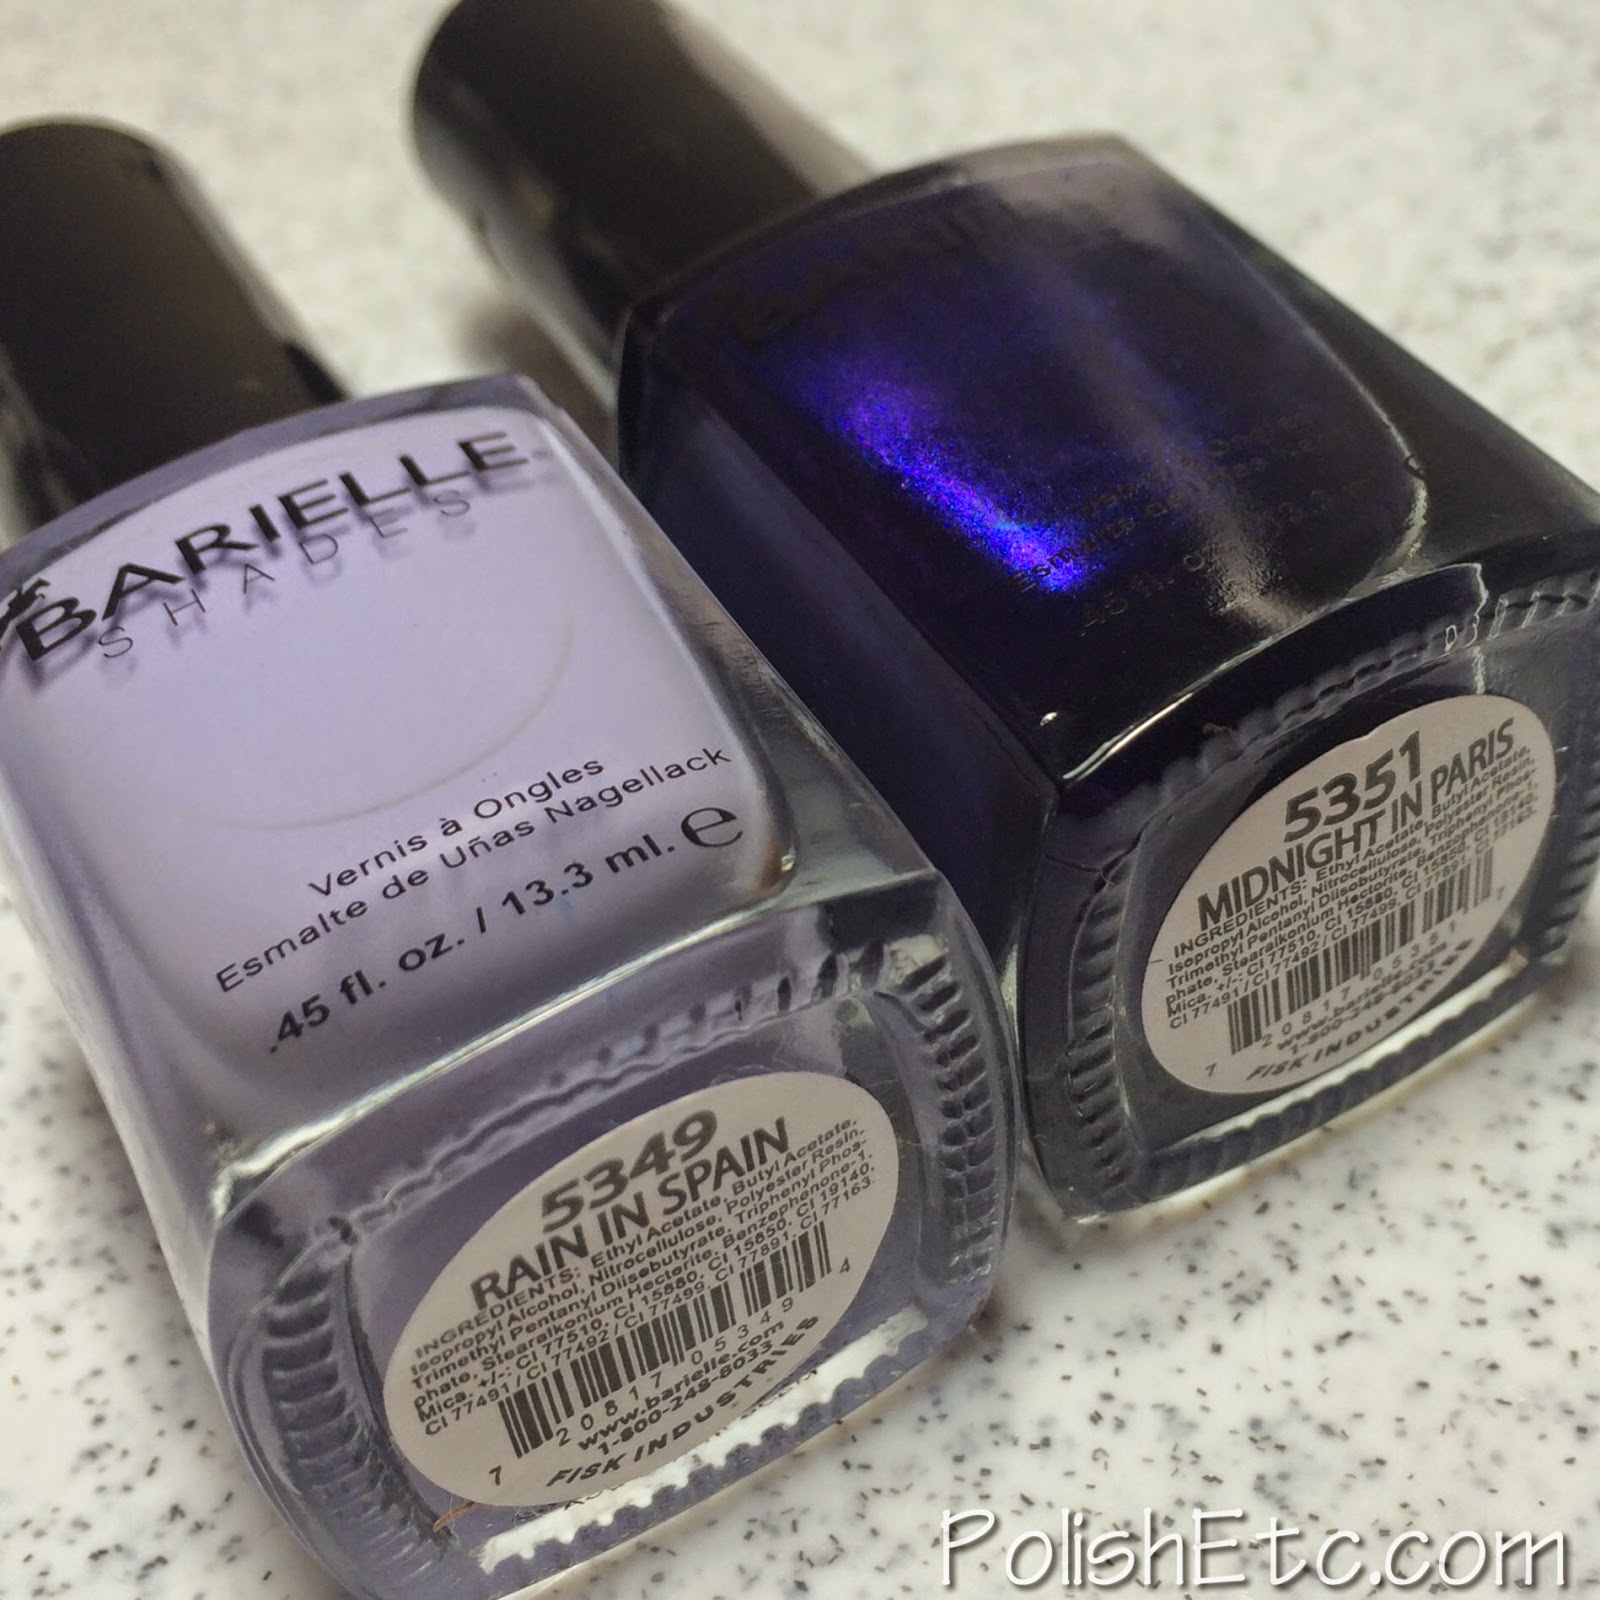 Barielle Jetsetter Collection - Nail Art by McPolish